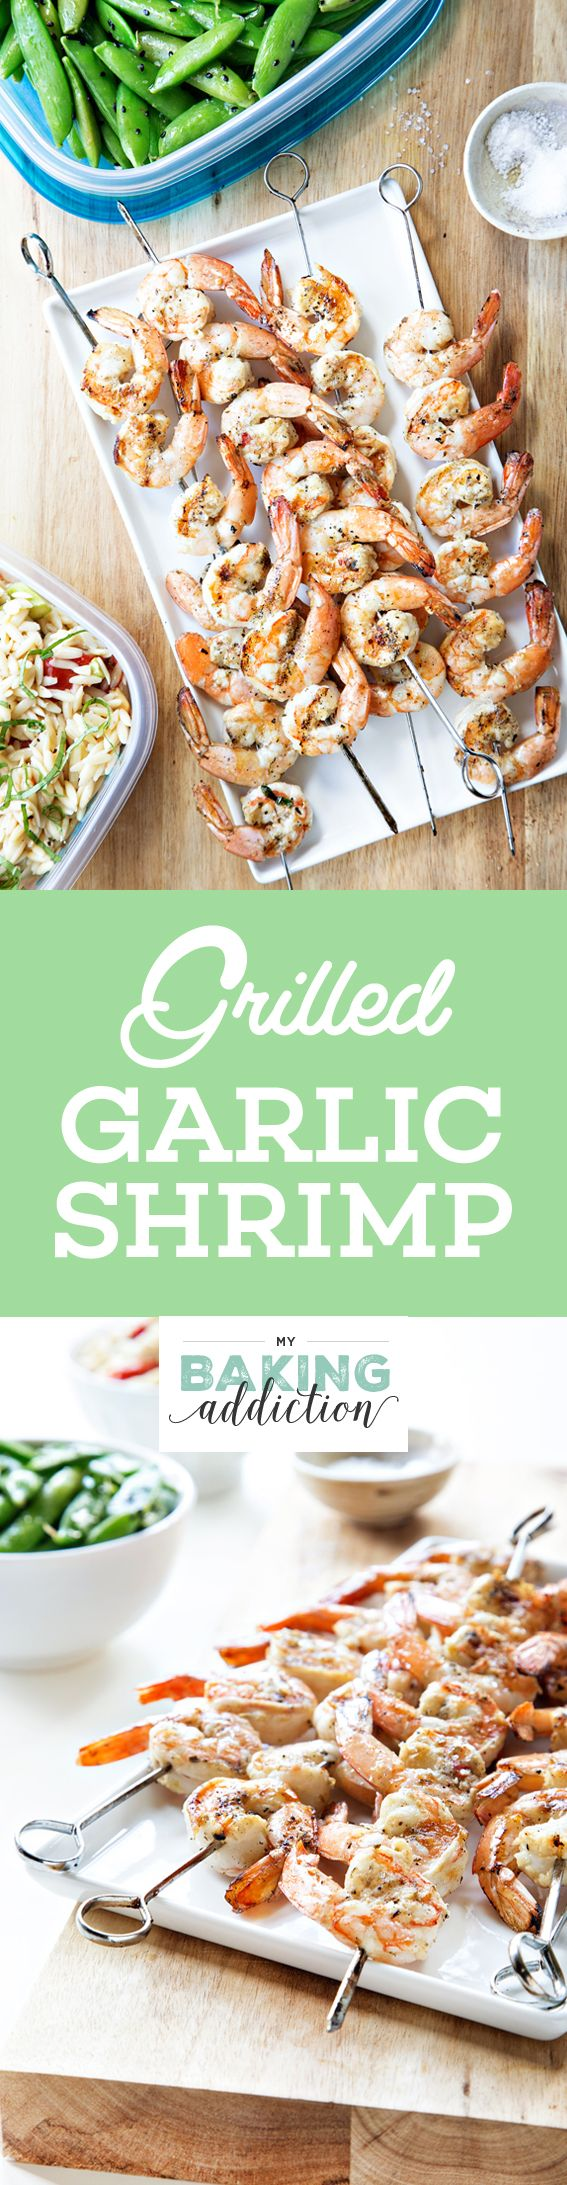 Grilled Garlic Basil Shrimp has a simple mariande of garlic, herbs, olive oil, and white wine. So easy!